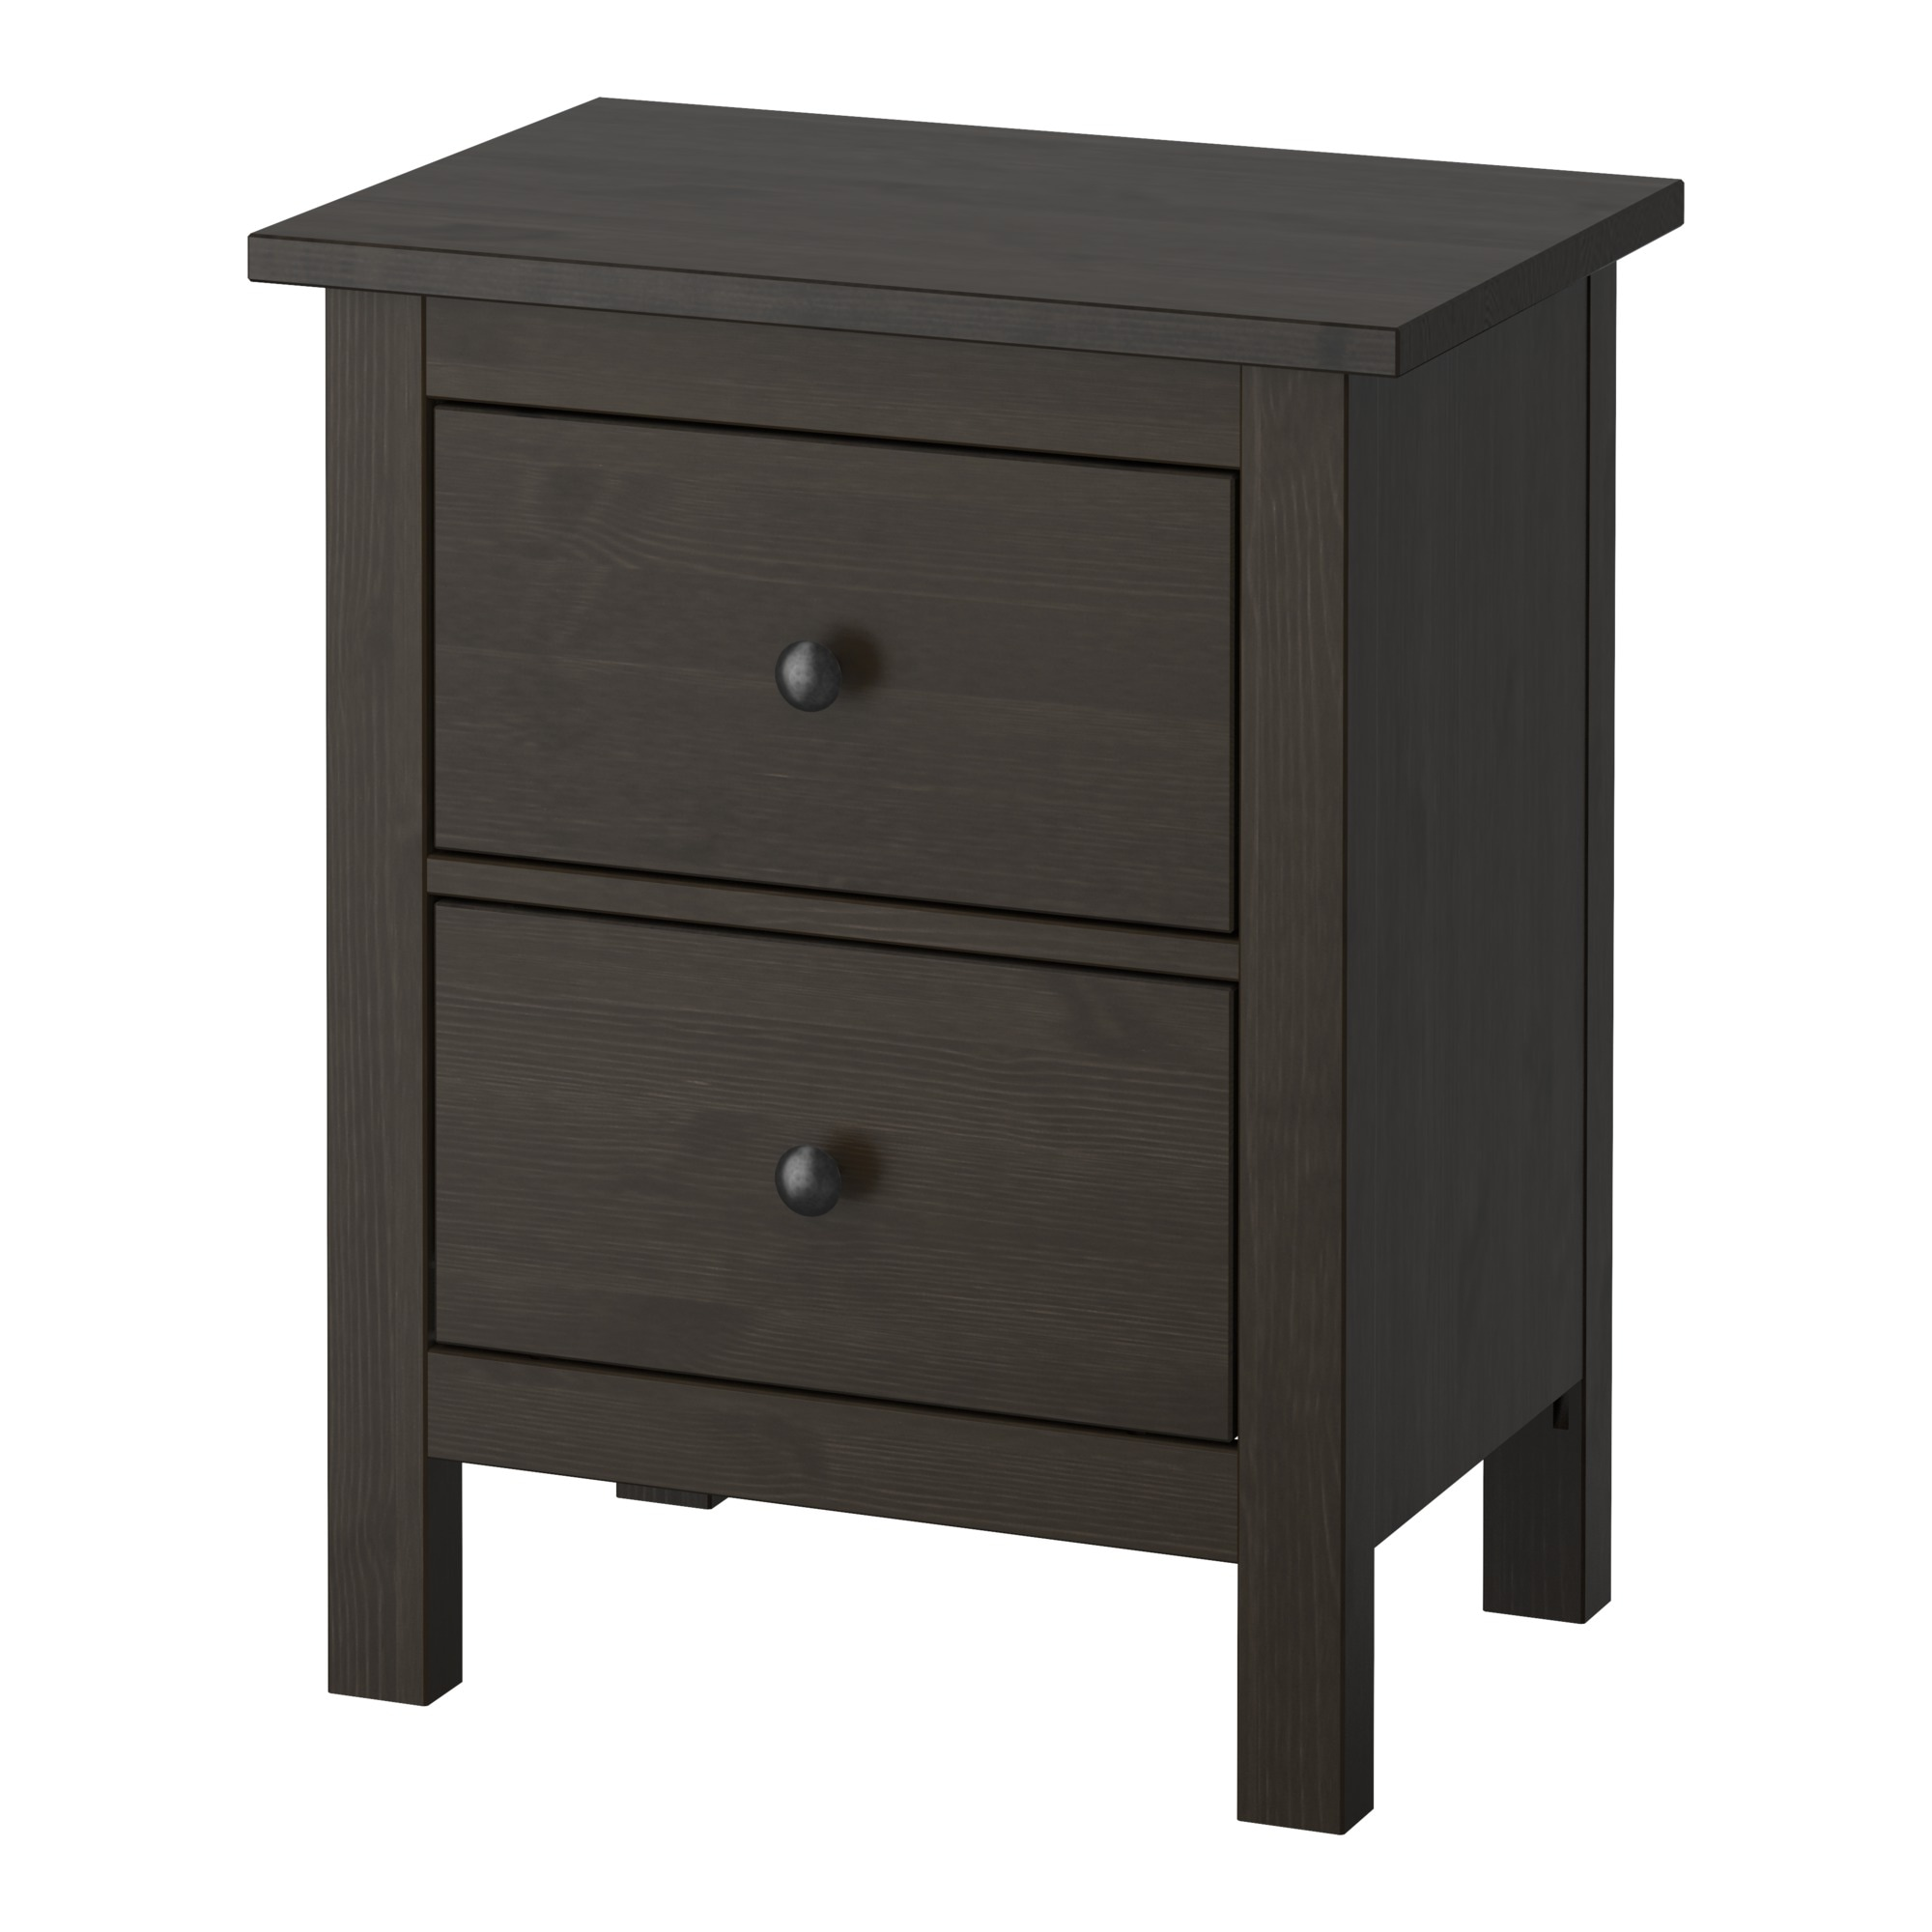 Low bedside table ideas - Hemnes 2 Drawer Chest Black Brown Width 21 1 4